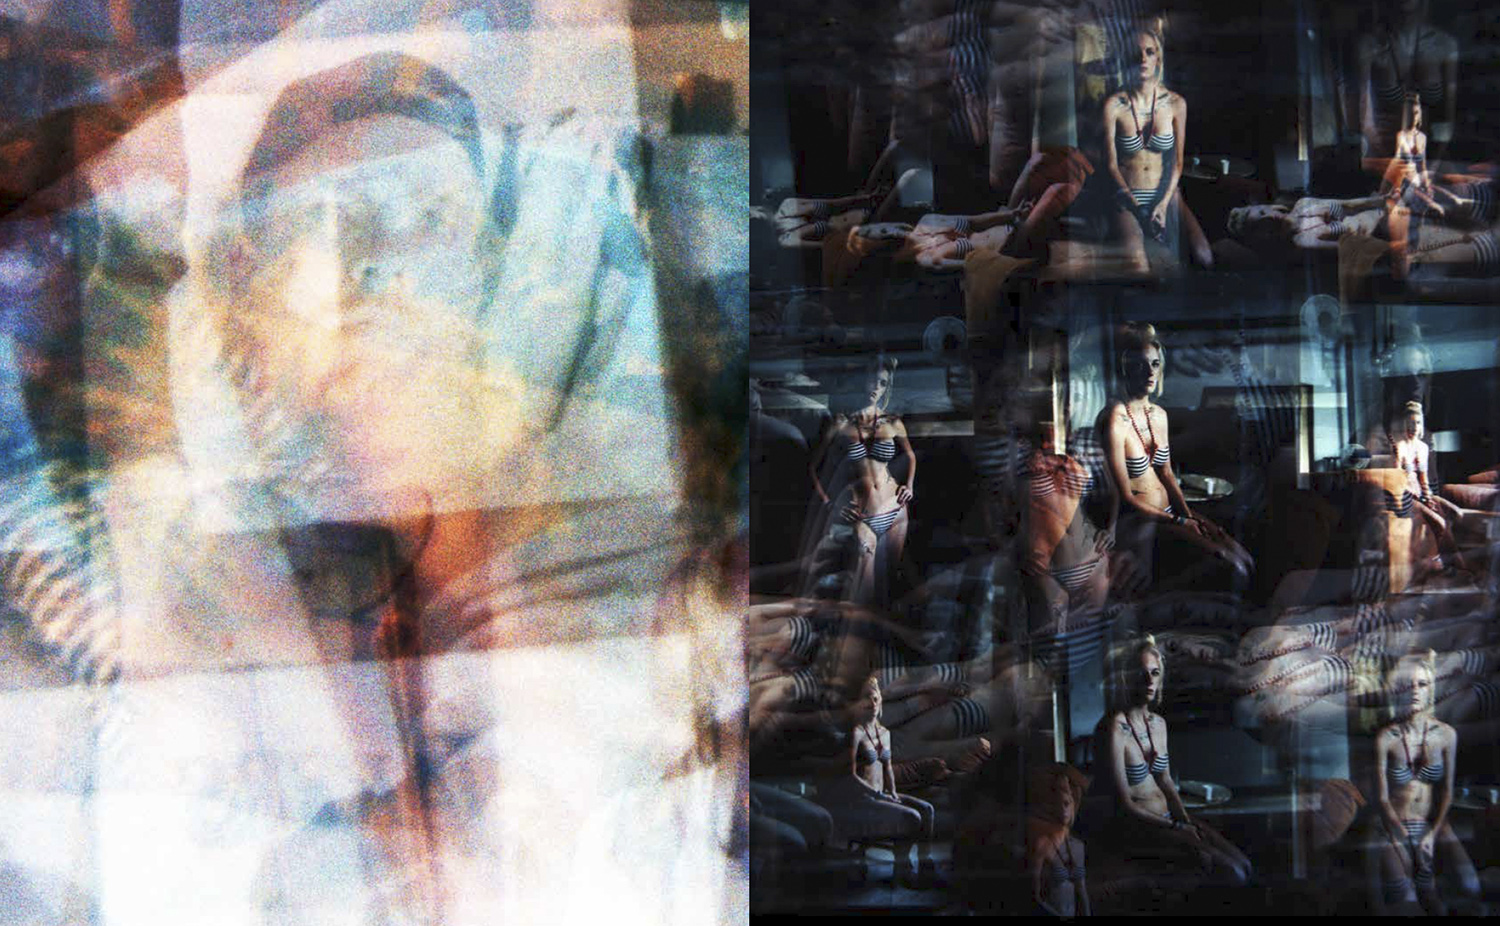 Coalescence I, 2013 and Coalescence II, 2013.These are re-photographed contact sheets from my Ibiza portrait series. A kind of 'frottage' or divination through entrail gazing, a kind of shamanistic process where I spontaneously and intuitively multiply re-photographed prints and contact sheets and watched for shapes or specters to appear that spoke beyond the 'straight' photographs.